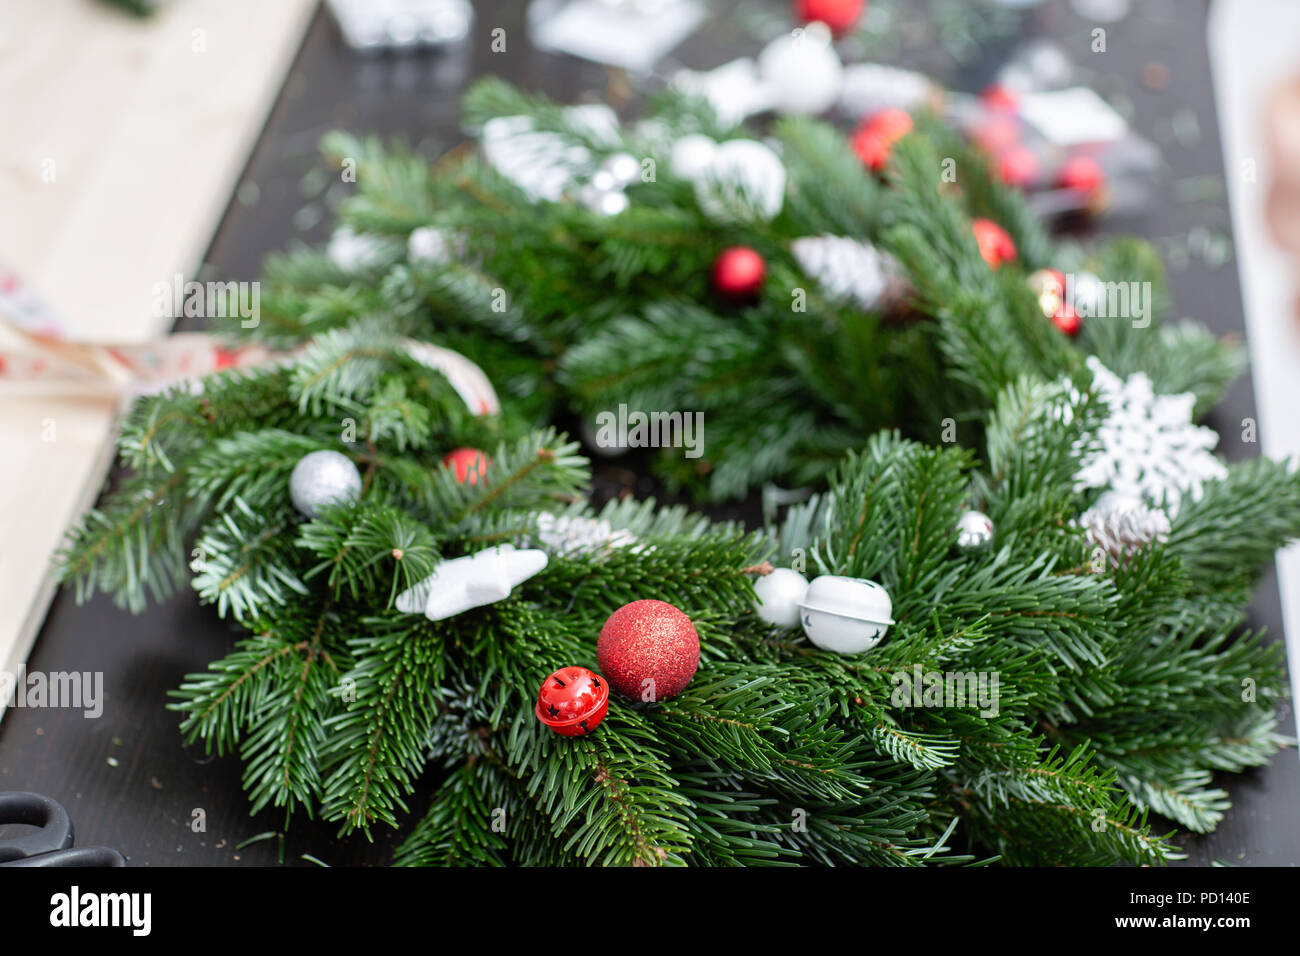 Manufacturer Of Christmas Wreath From Branches Of Pine For Holiday